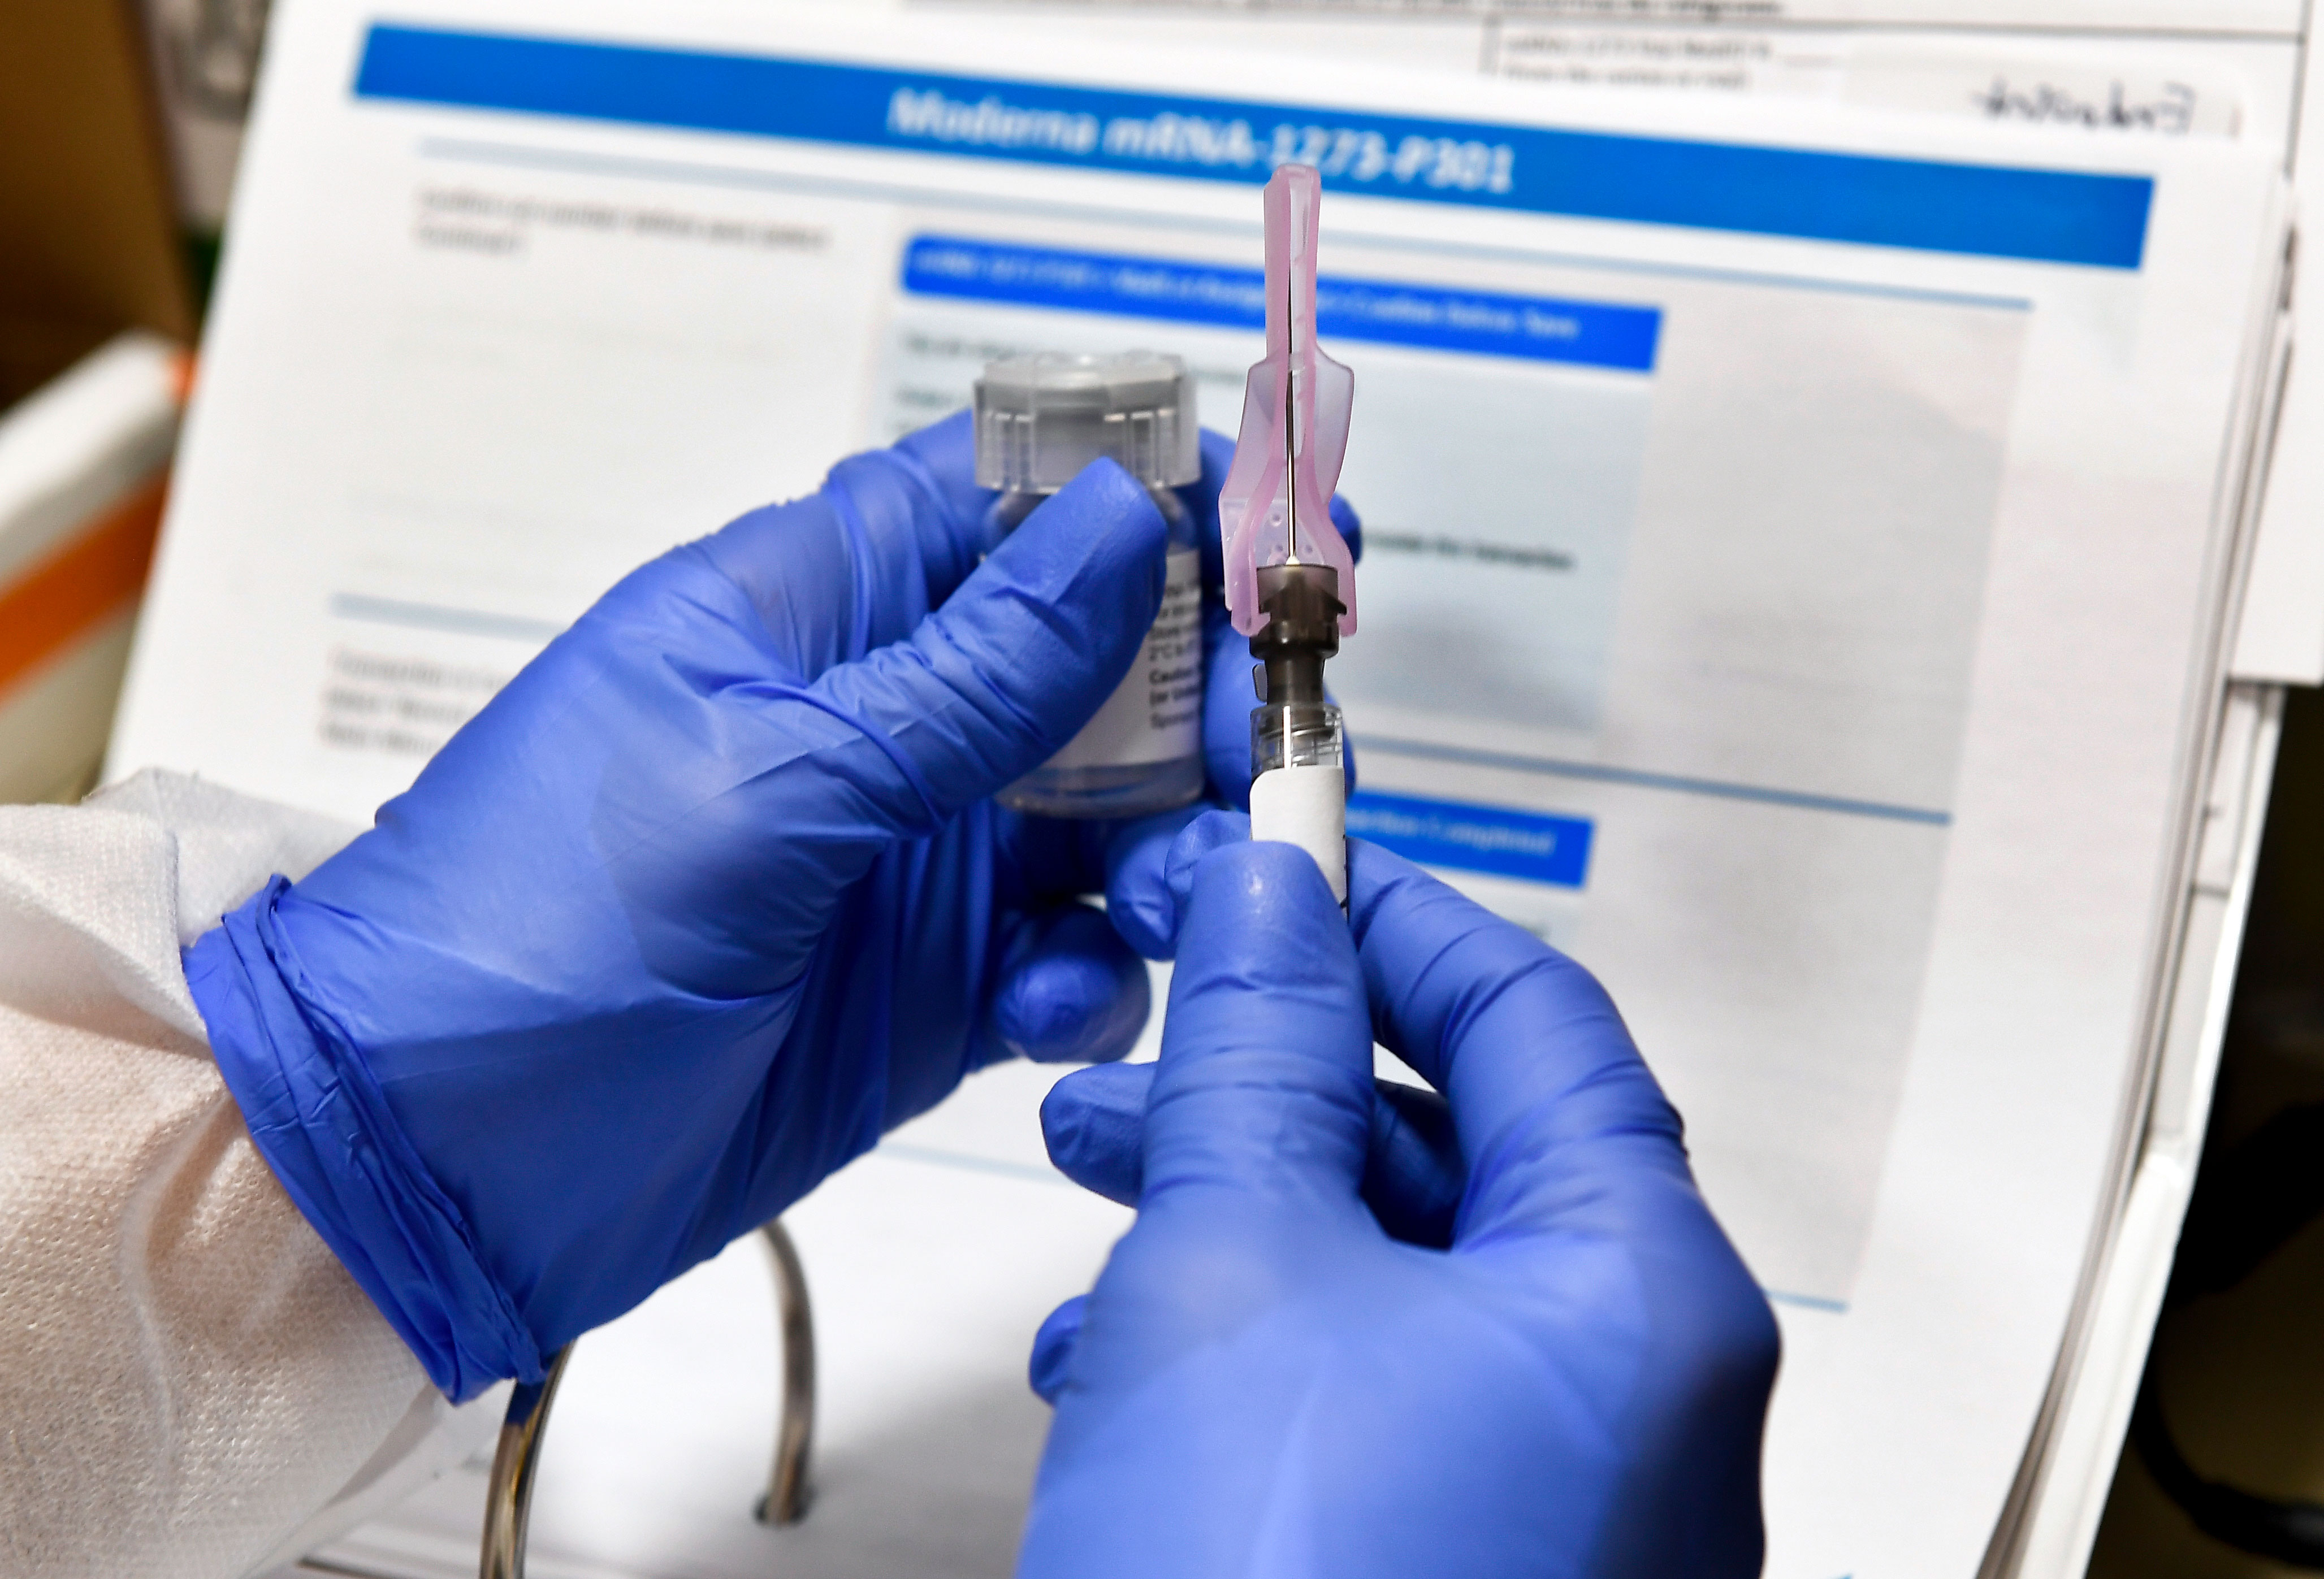 Nurse Kathe Olmstead prepares a syringe containing a Covid-19 vaccine,developed by the National Institutes of Health and Moderna on July 27 in Binghamton, New York.